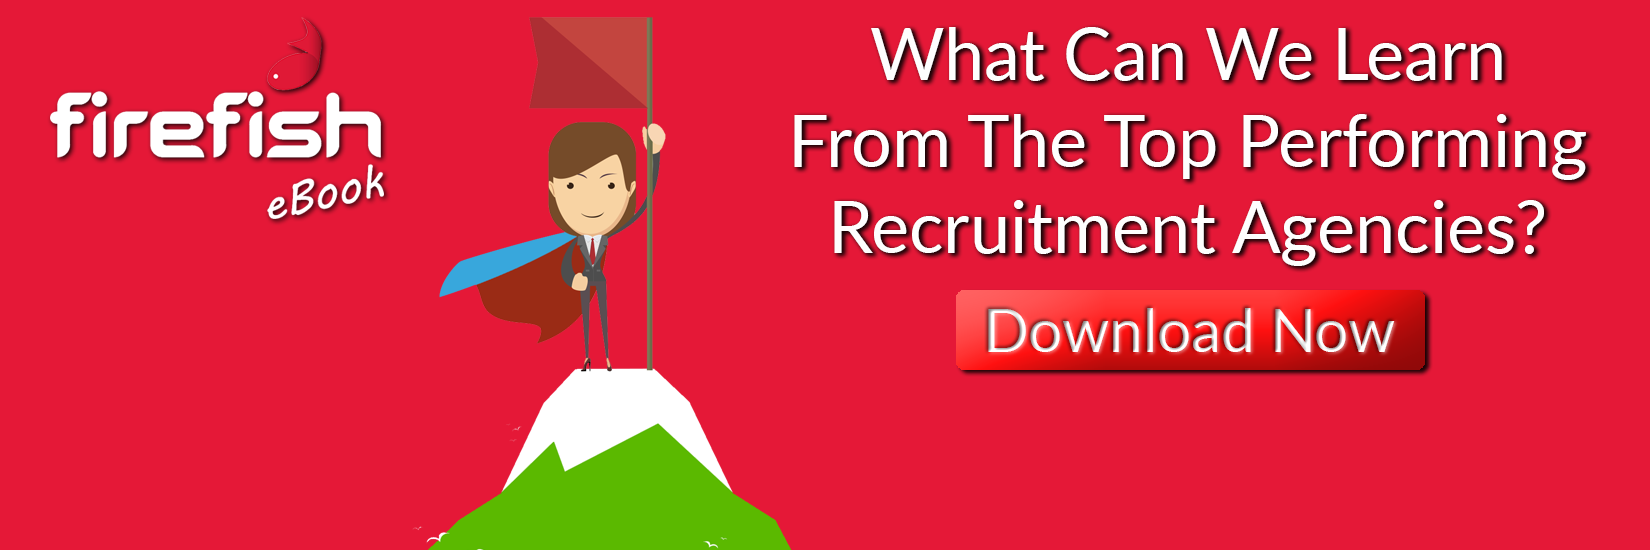 What Can We Learn from the Top Performing Recruitment Agencies